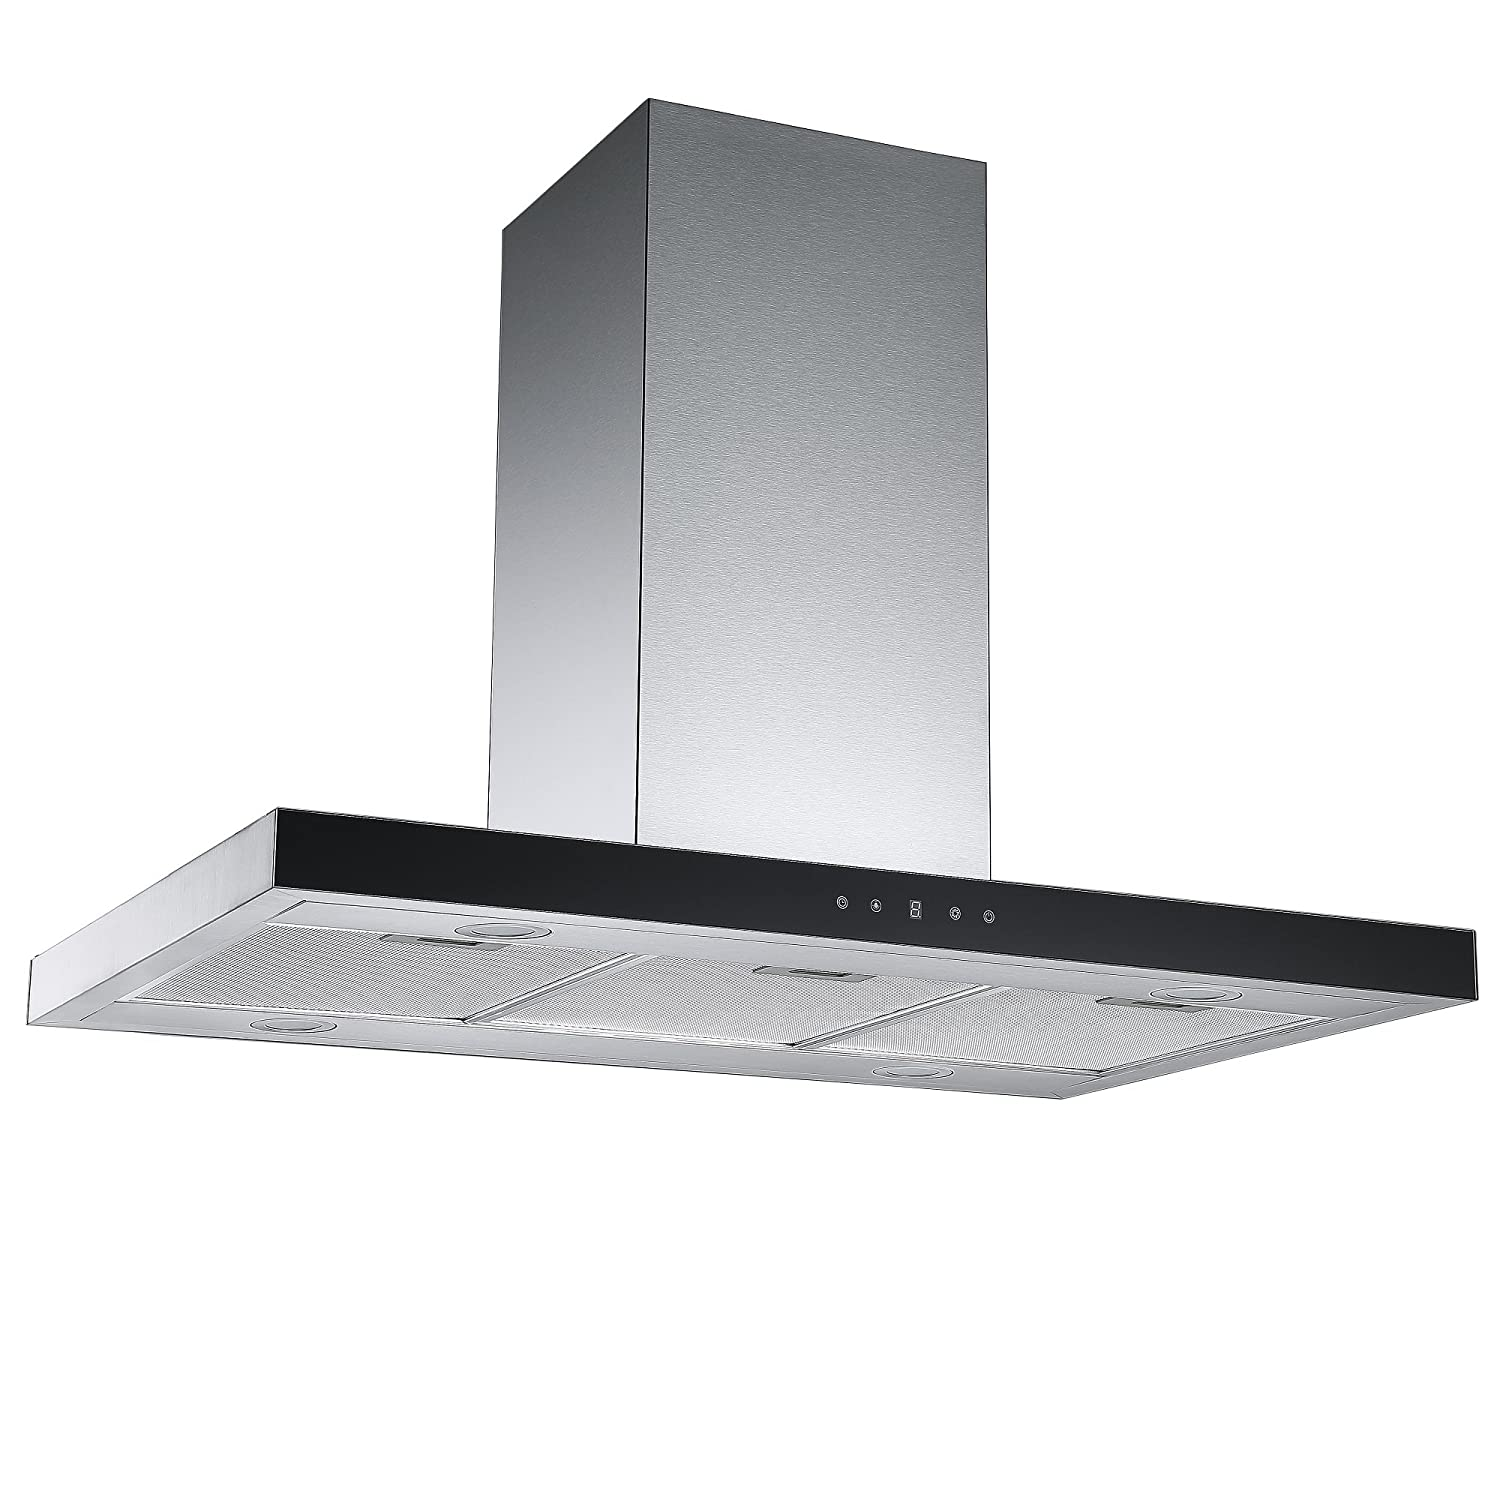 Cookology IDLINT901SS 90cm Linear Island Chimney Cooker Hood in Stainless Steel | Ceiling mounted Extractor Fan [Energy Class C]